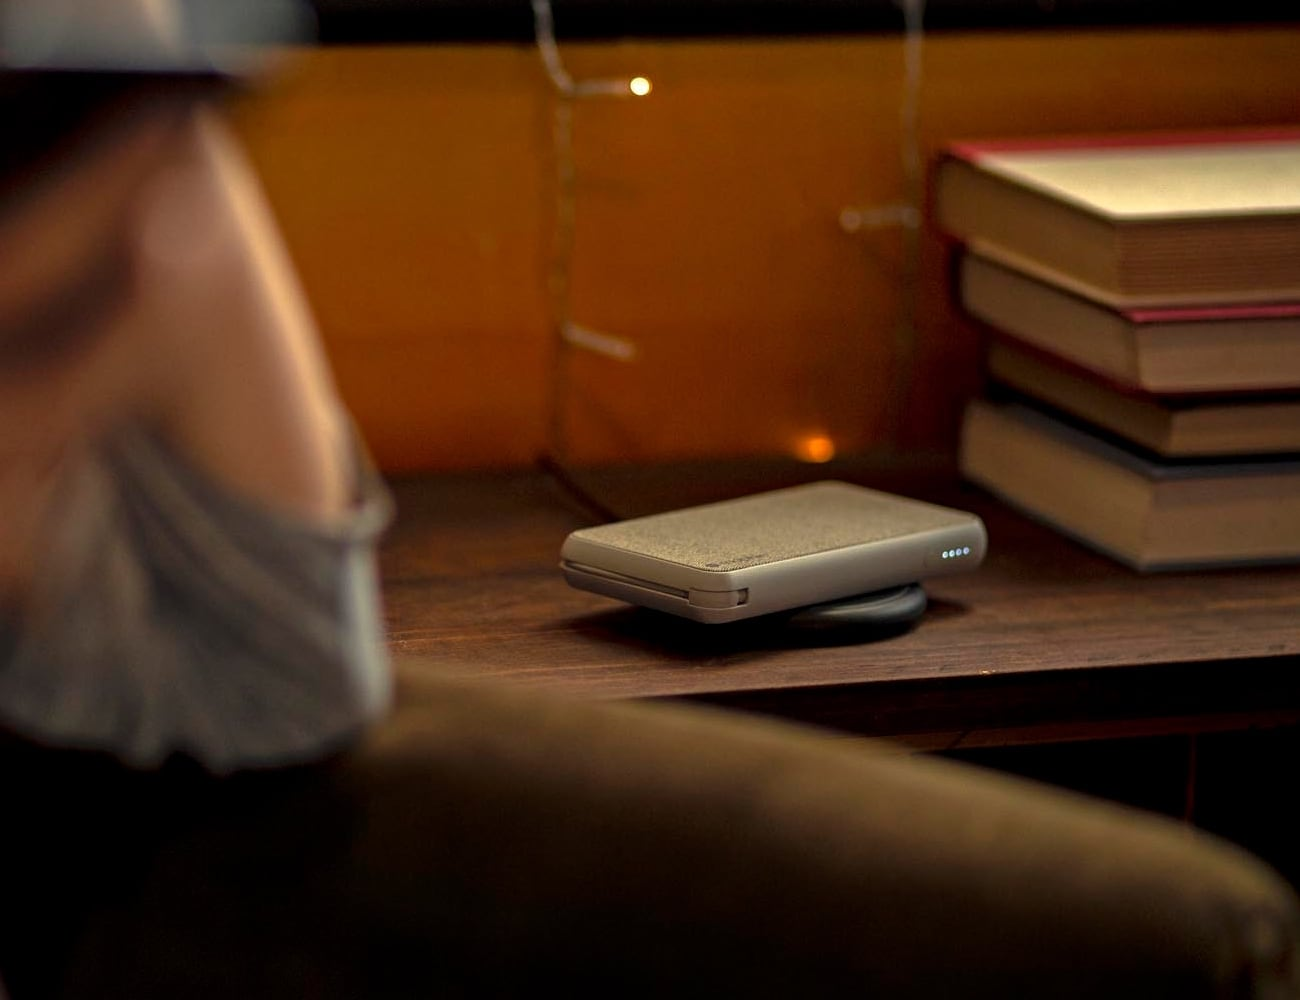 online retailer 73a31 3cf29 mophie powerstation plus XL with Lightning connector Apple Power Bank  provides 10,000 mAh of battery power